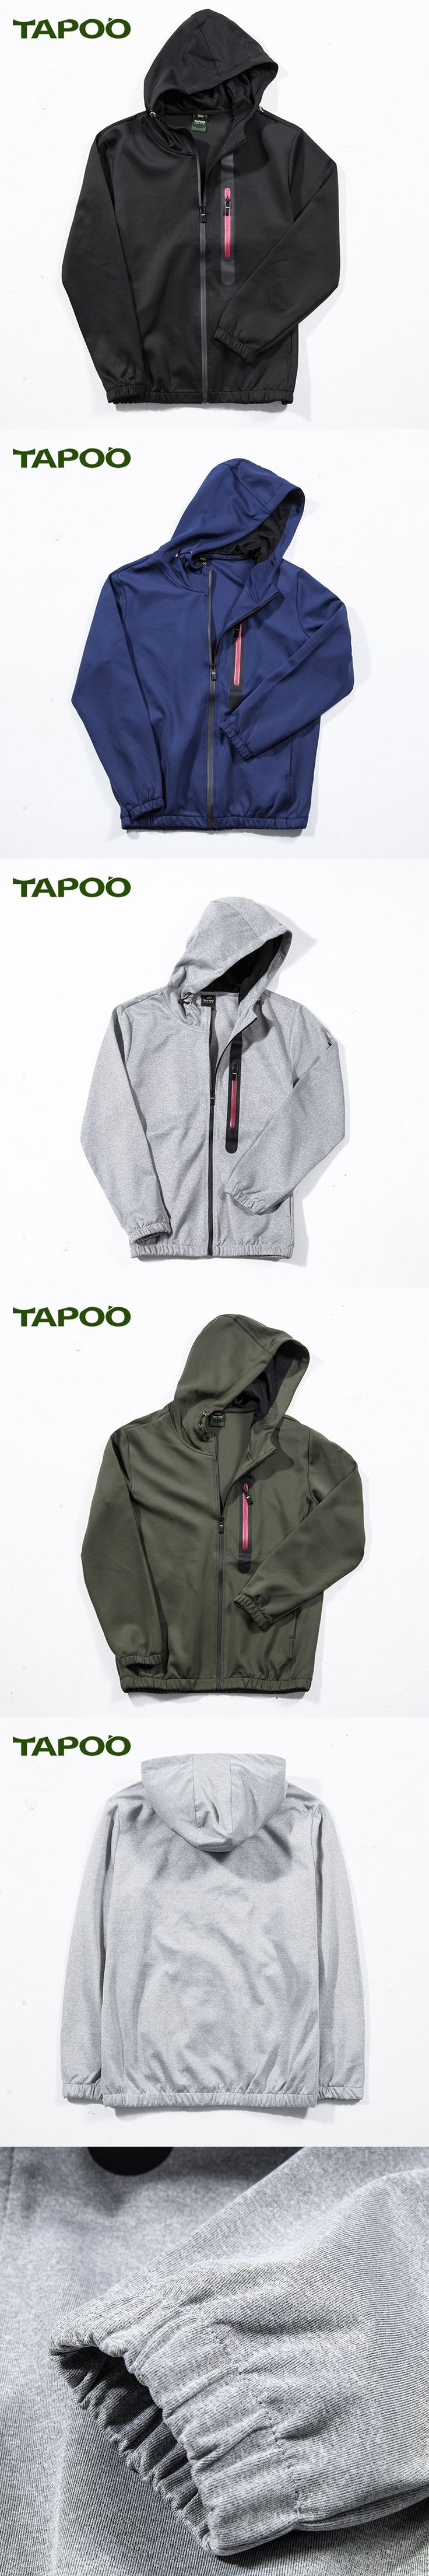 Men Hoody New 2017 Autumn Assassins Creed Hoodie Tapoo Brand Clothing Casual Coat Sudadera Hombre Purpose Tour Trasher hoody